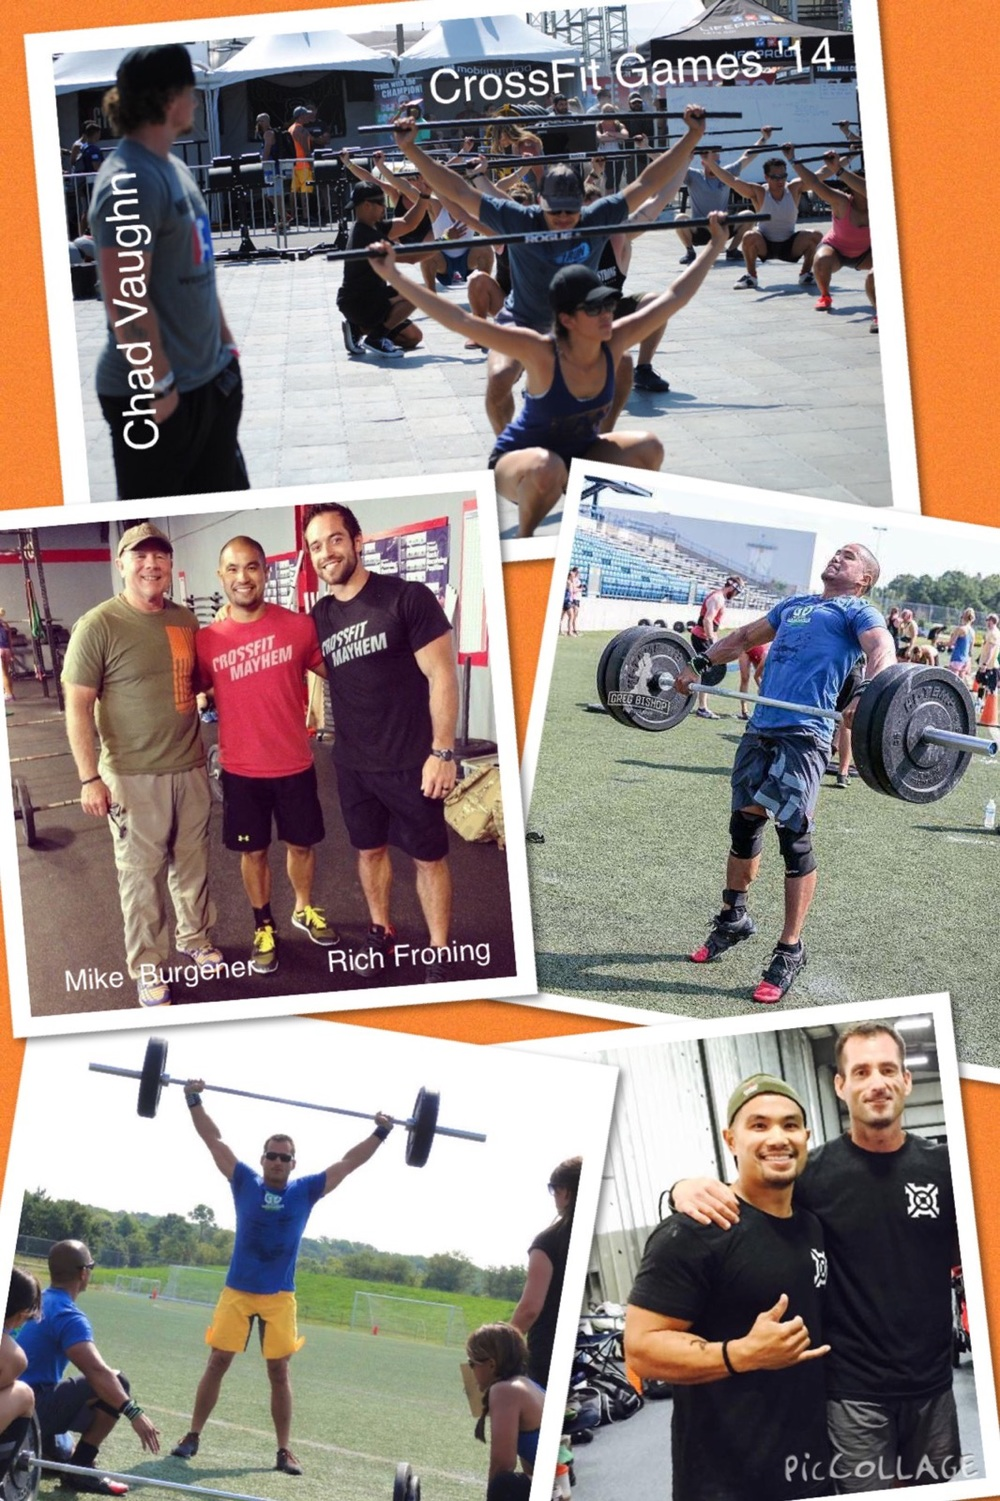 Coaching staff u drop box crossfit